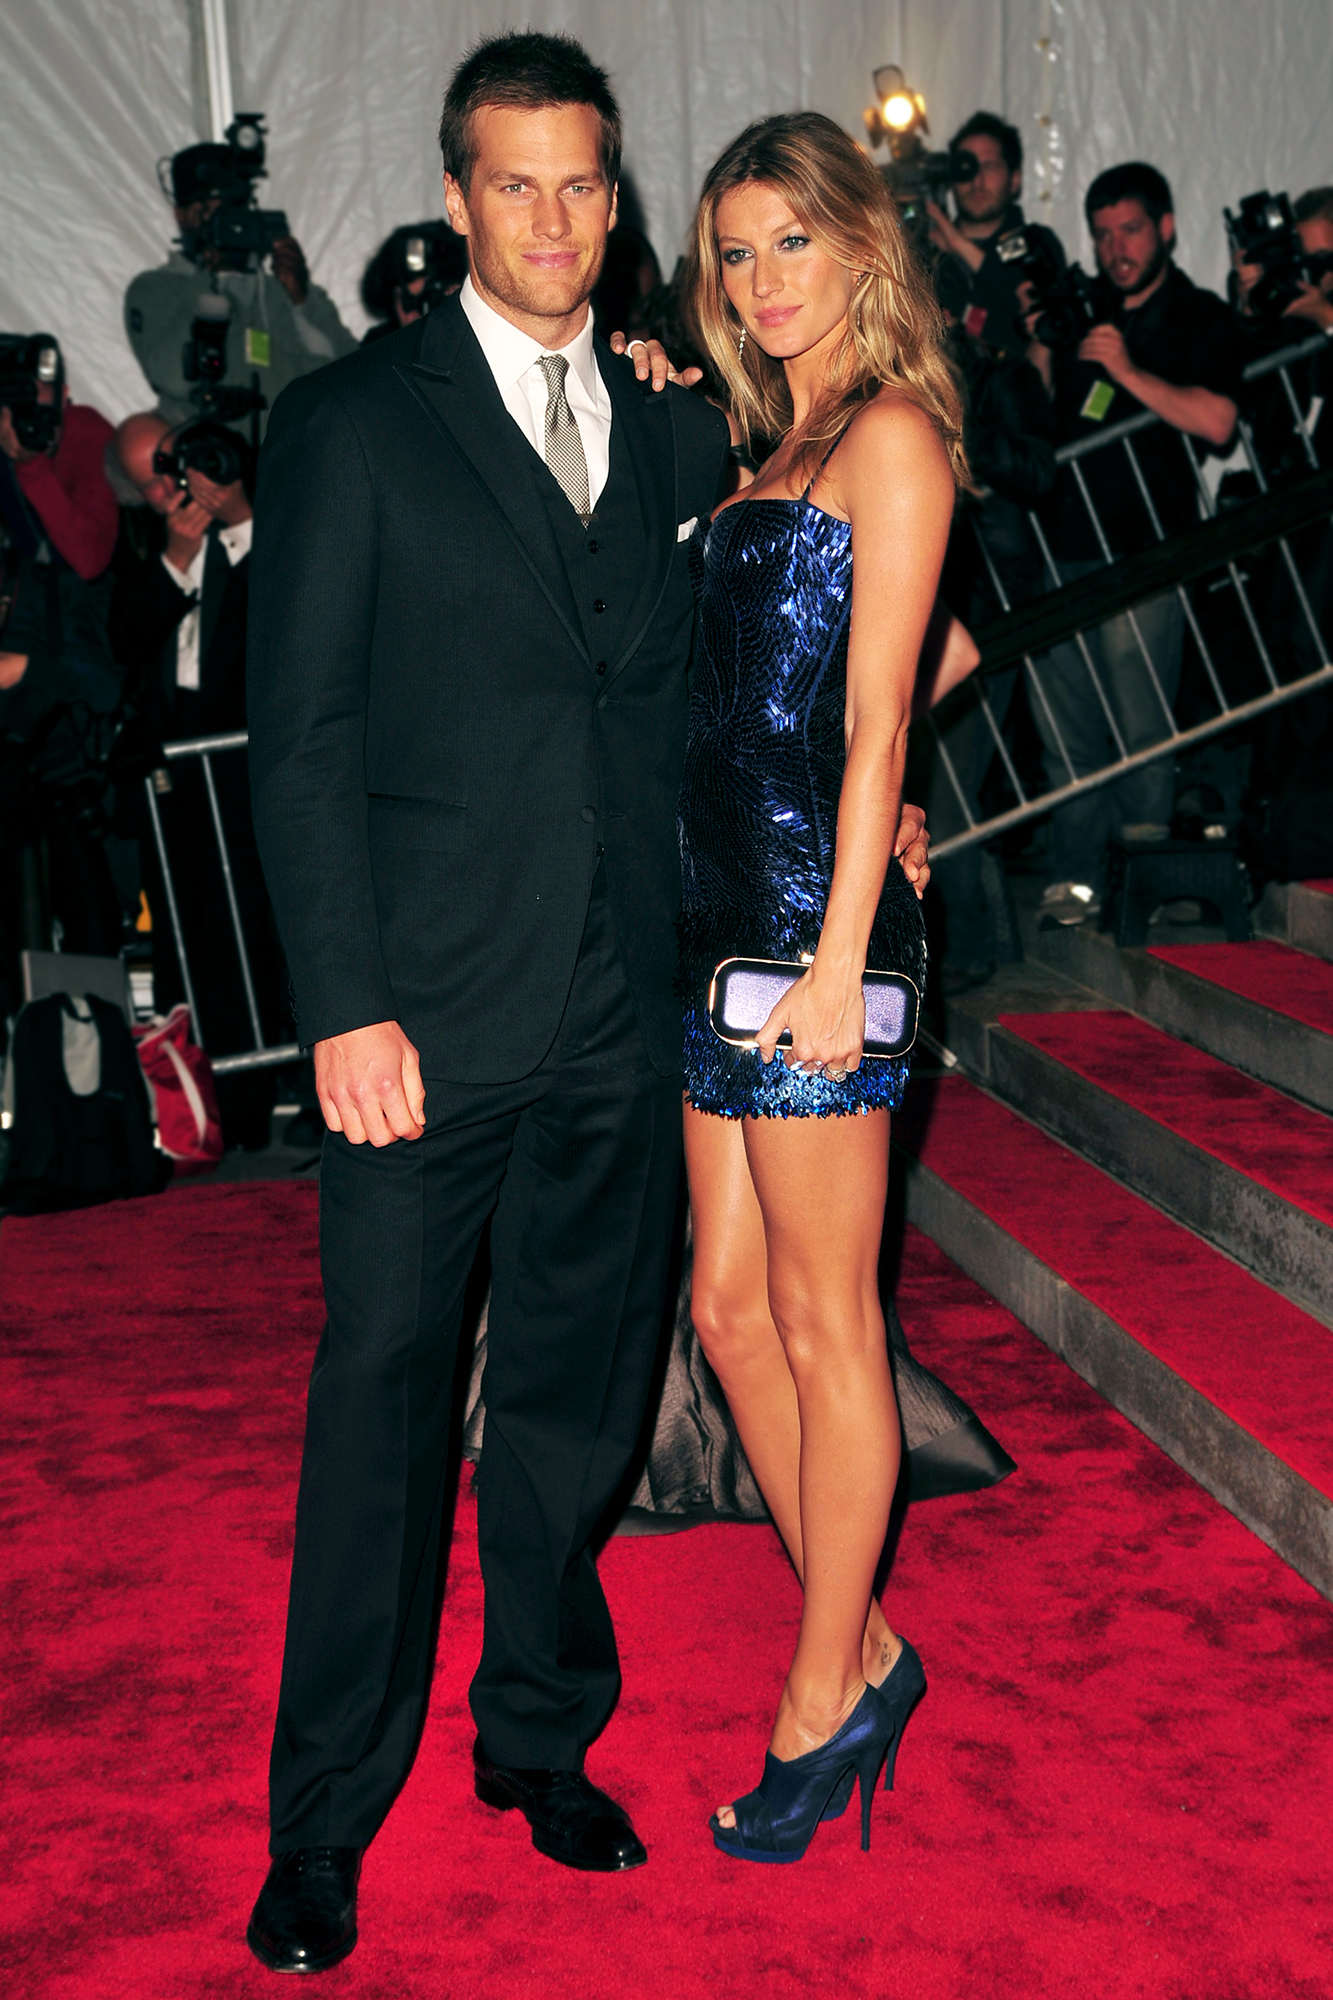 Tom Brady and Gisele Bundchen: A Timeline of Their Relationship - After two years of dating, Brady and Bündchen got engaged in January 2009.